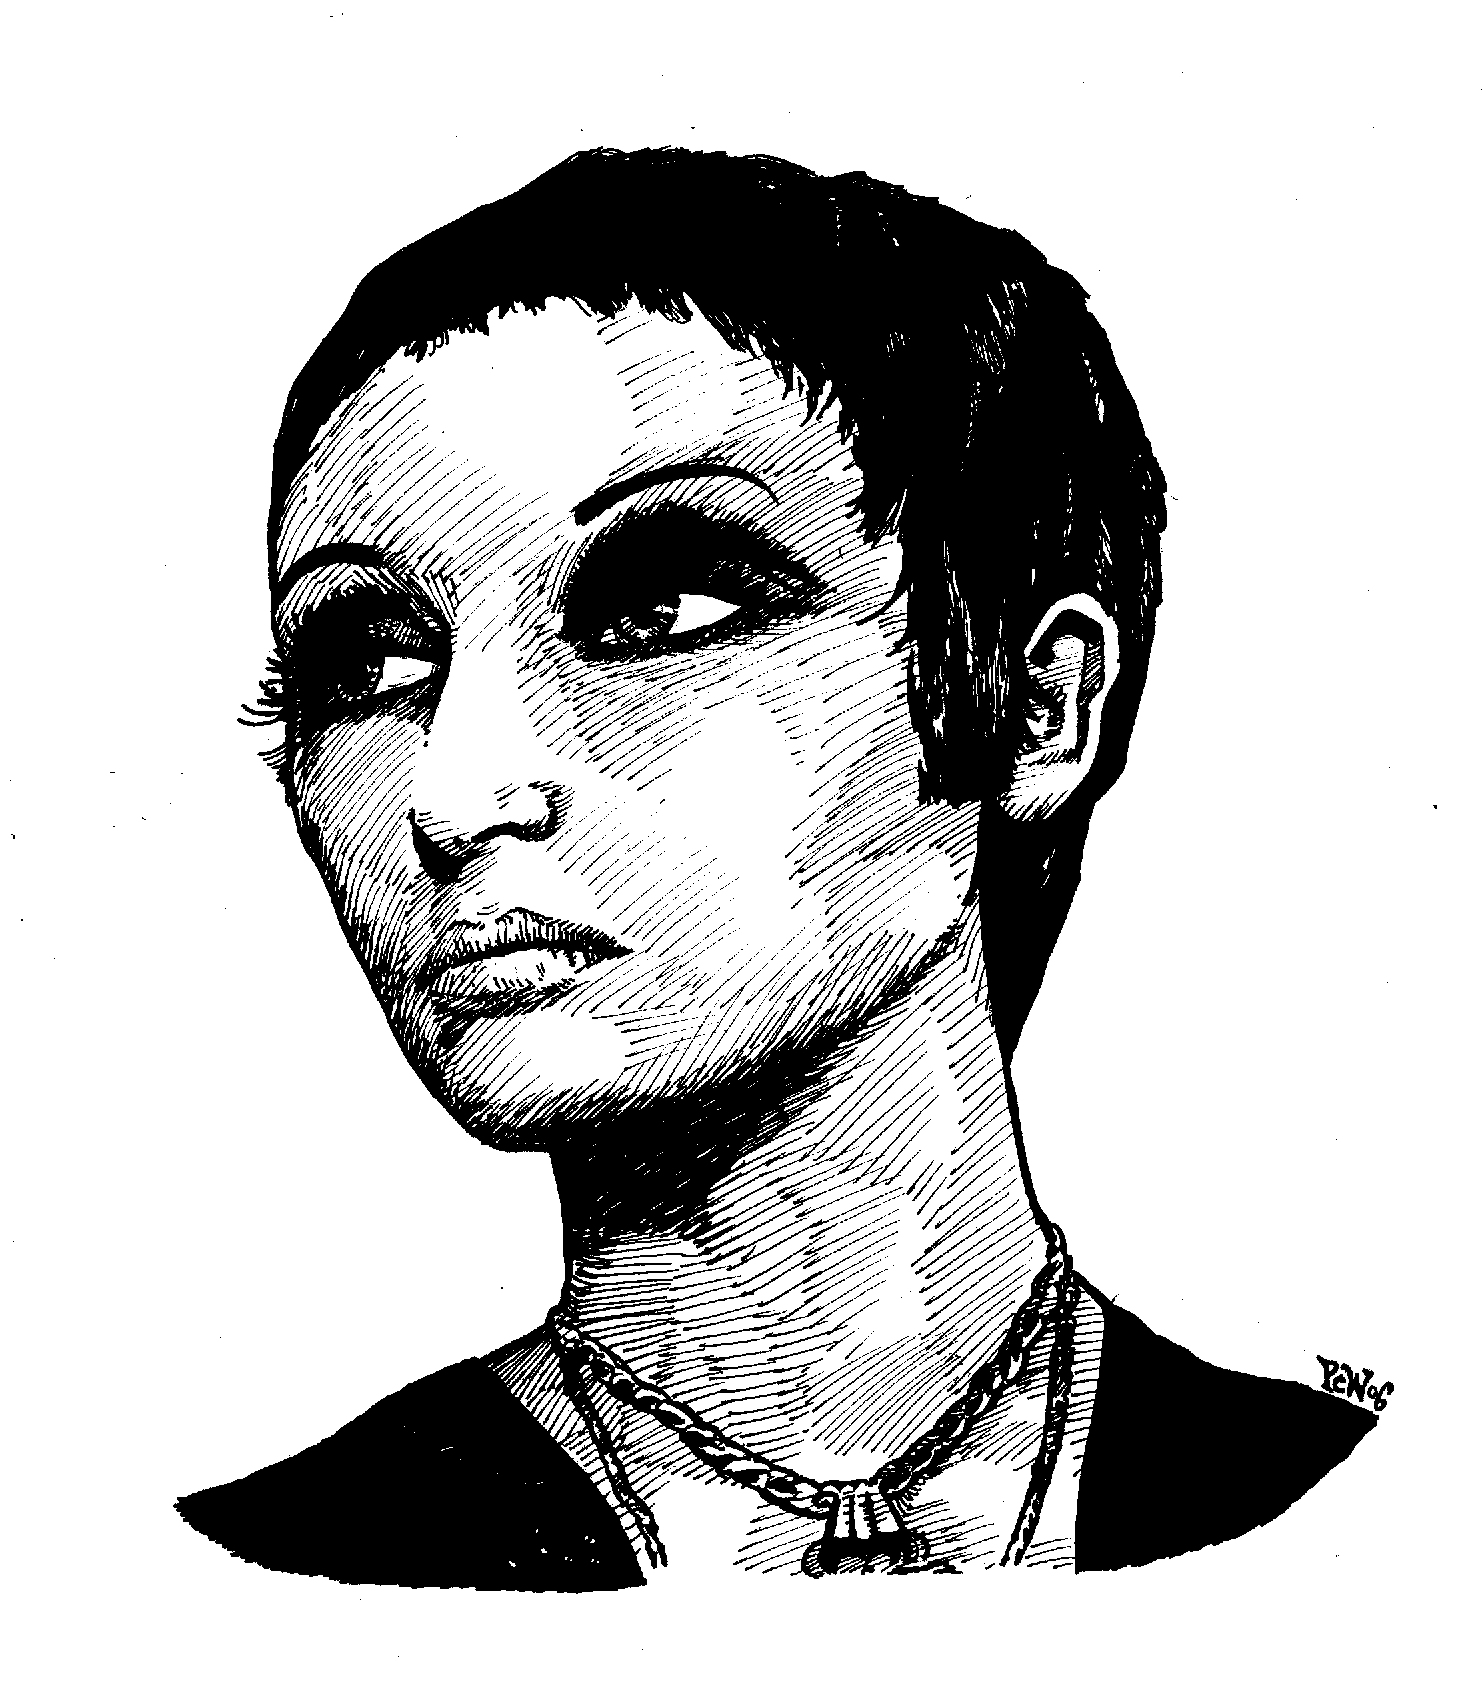 $250, Julie Driscoll used in GZD